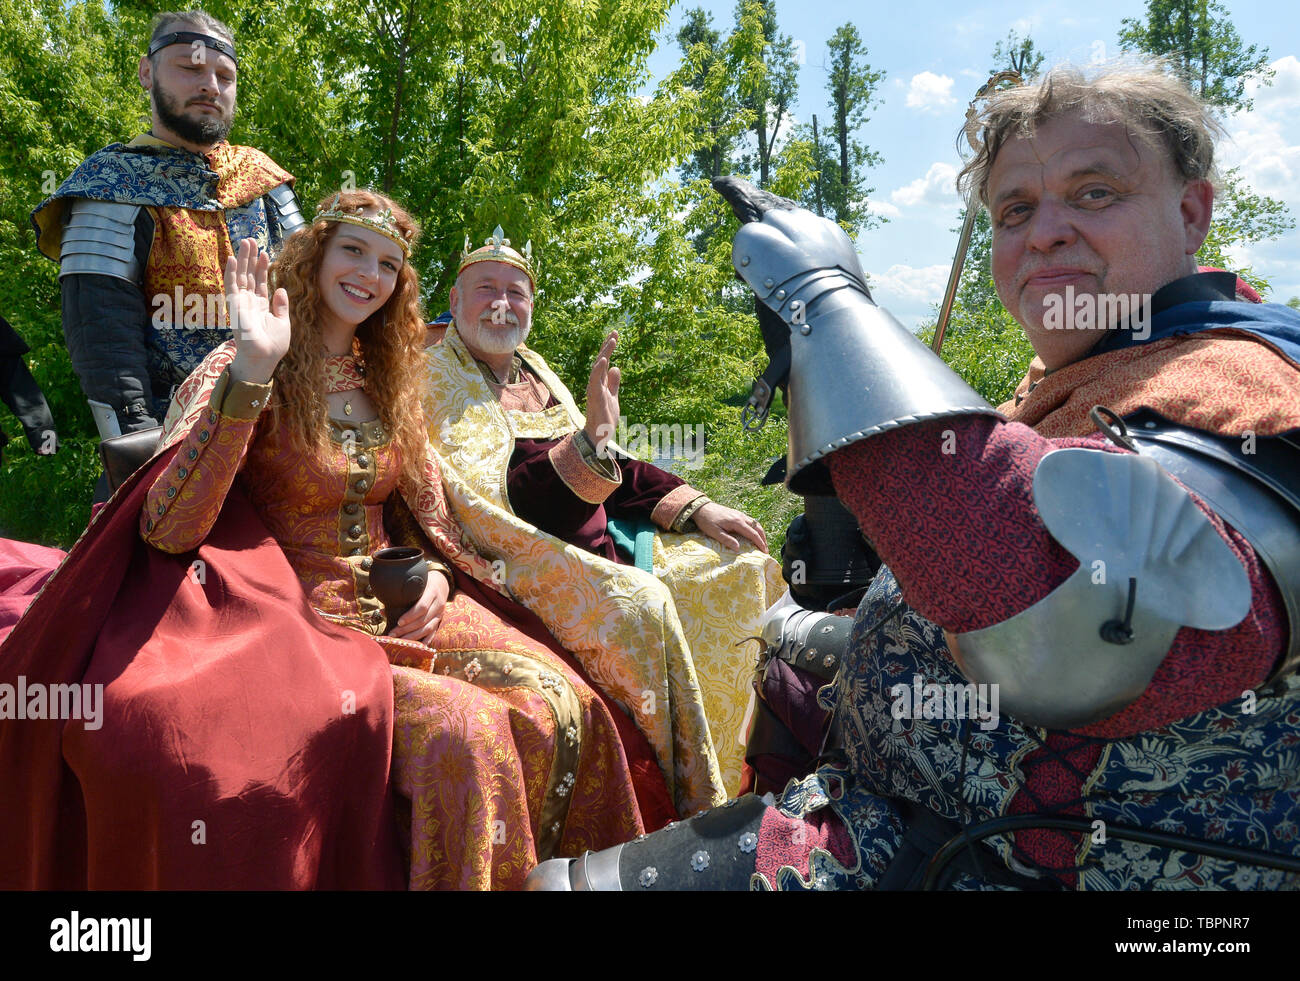 Prague, Czech Republic. 01st June, 2019. A two-day historic royal procession of emperor Charles IV and his suite with crown jewels sets out from Prague to Karlstejn Castle, Czech Republic, on June 1, 2019. Credit: Michaela Rihova/CTK Photo/Alamy Live News Stock Photo